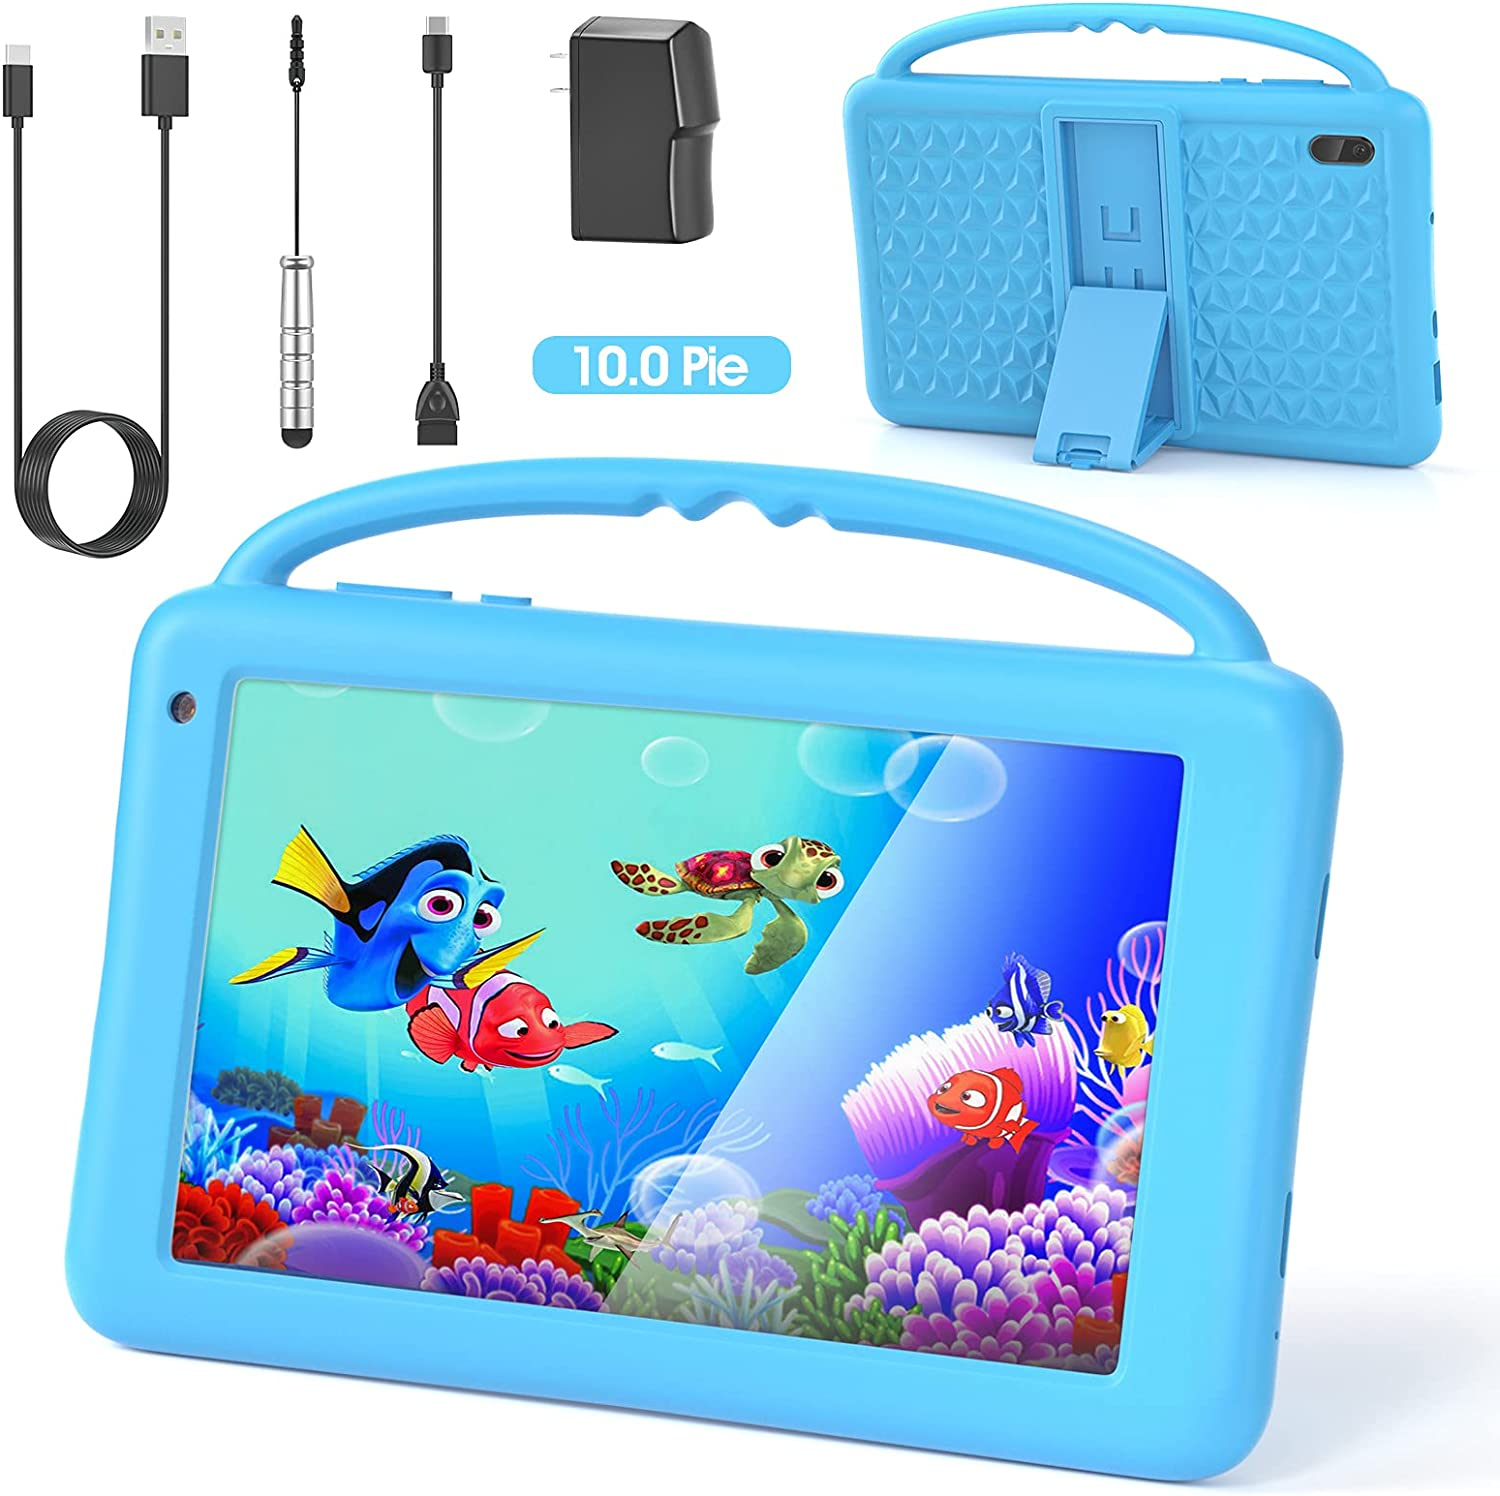 Kids Tablet 7 New sales Inch IPS HD P QuadCore 10.0 Now free shipping Display Android